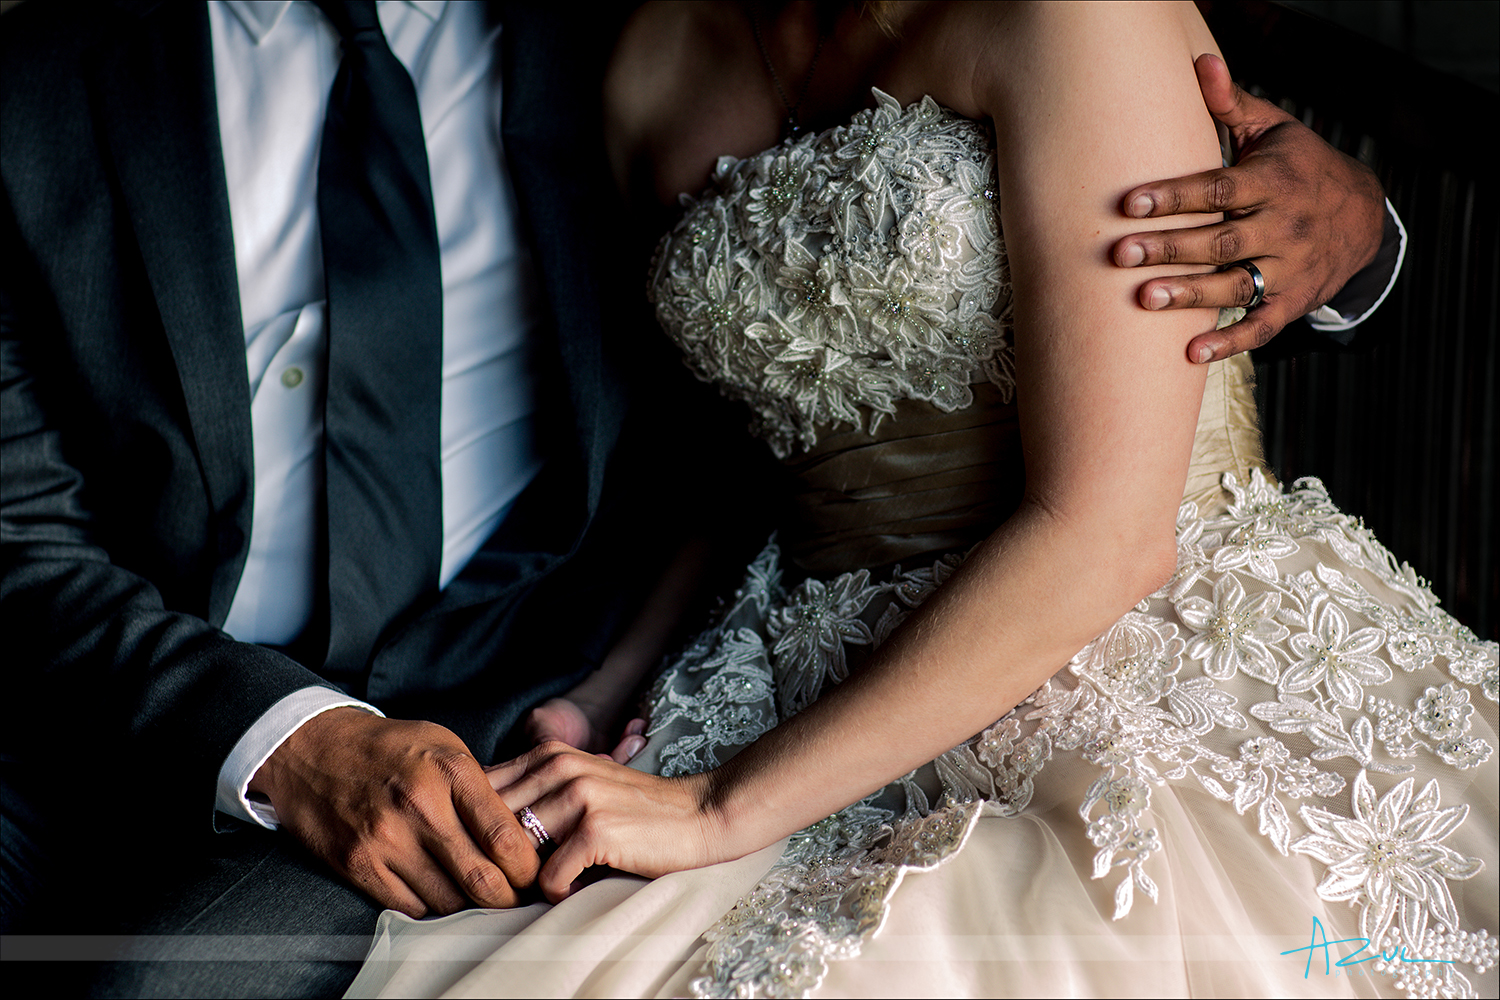 Documentary wedding detail photography shoot in Raleigh